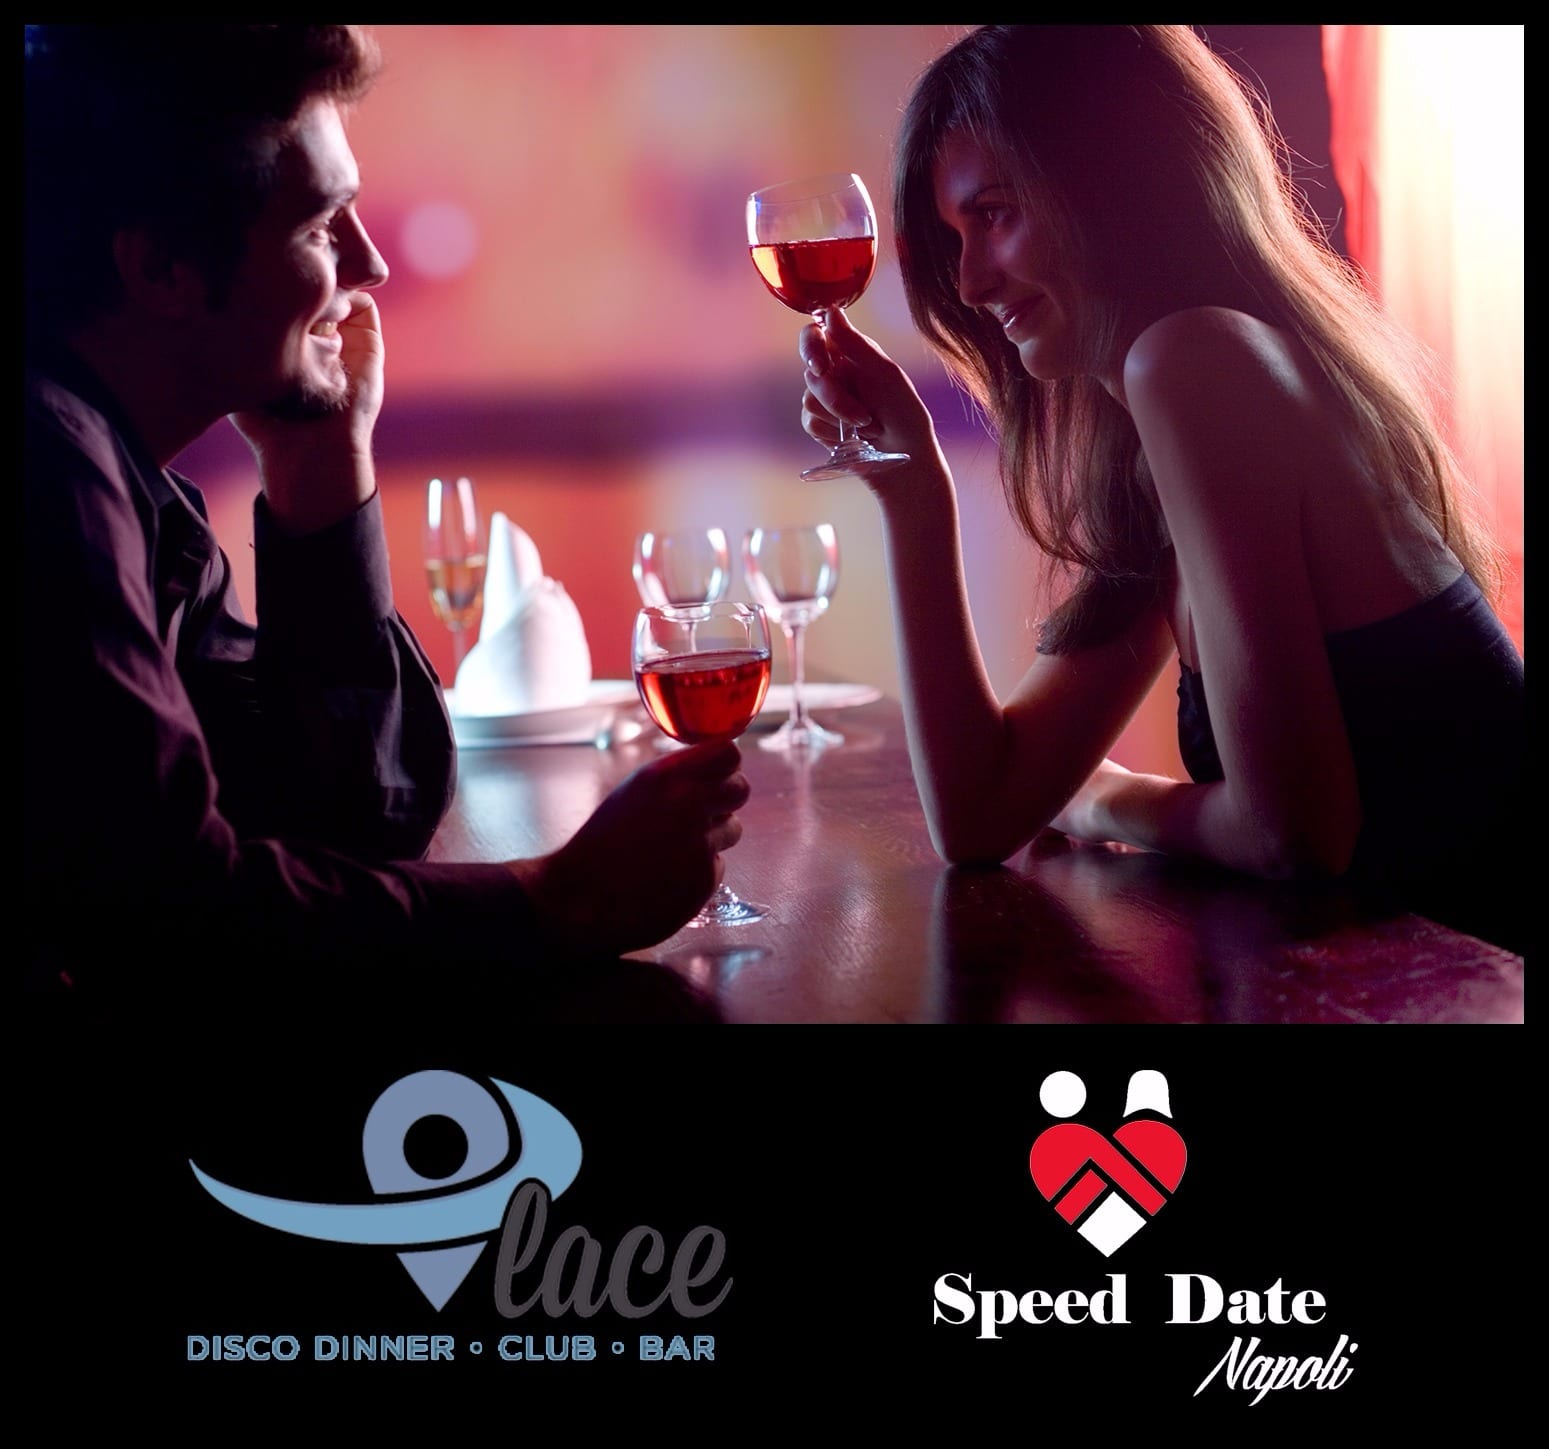 Speed Date Napoli - Home Facebook